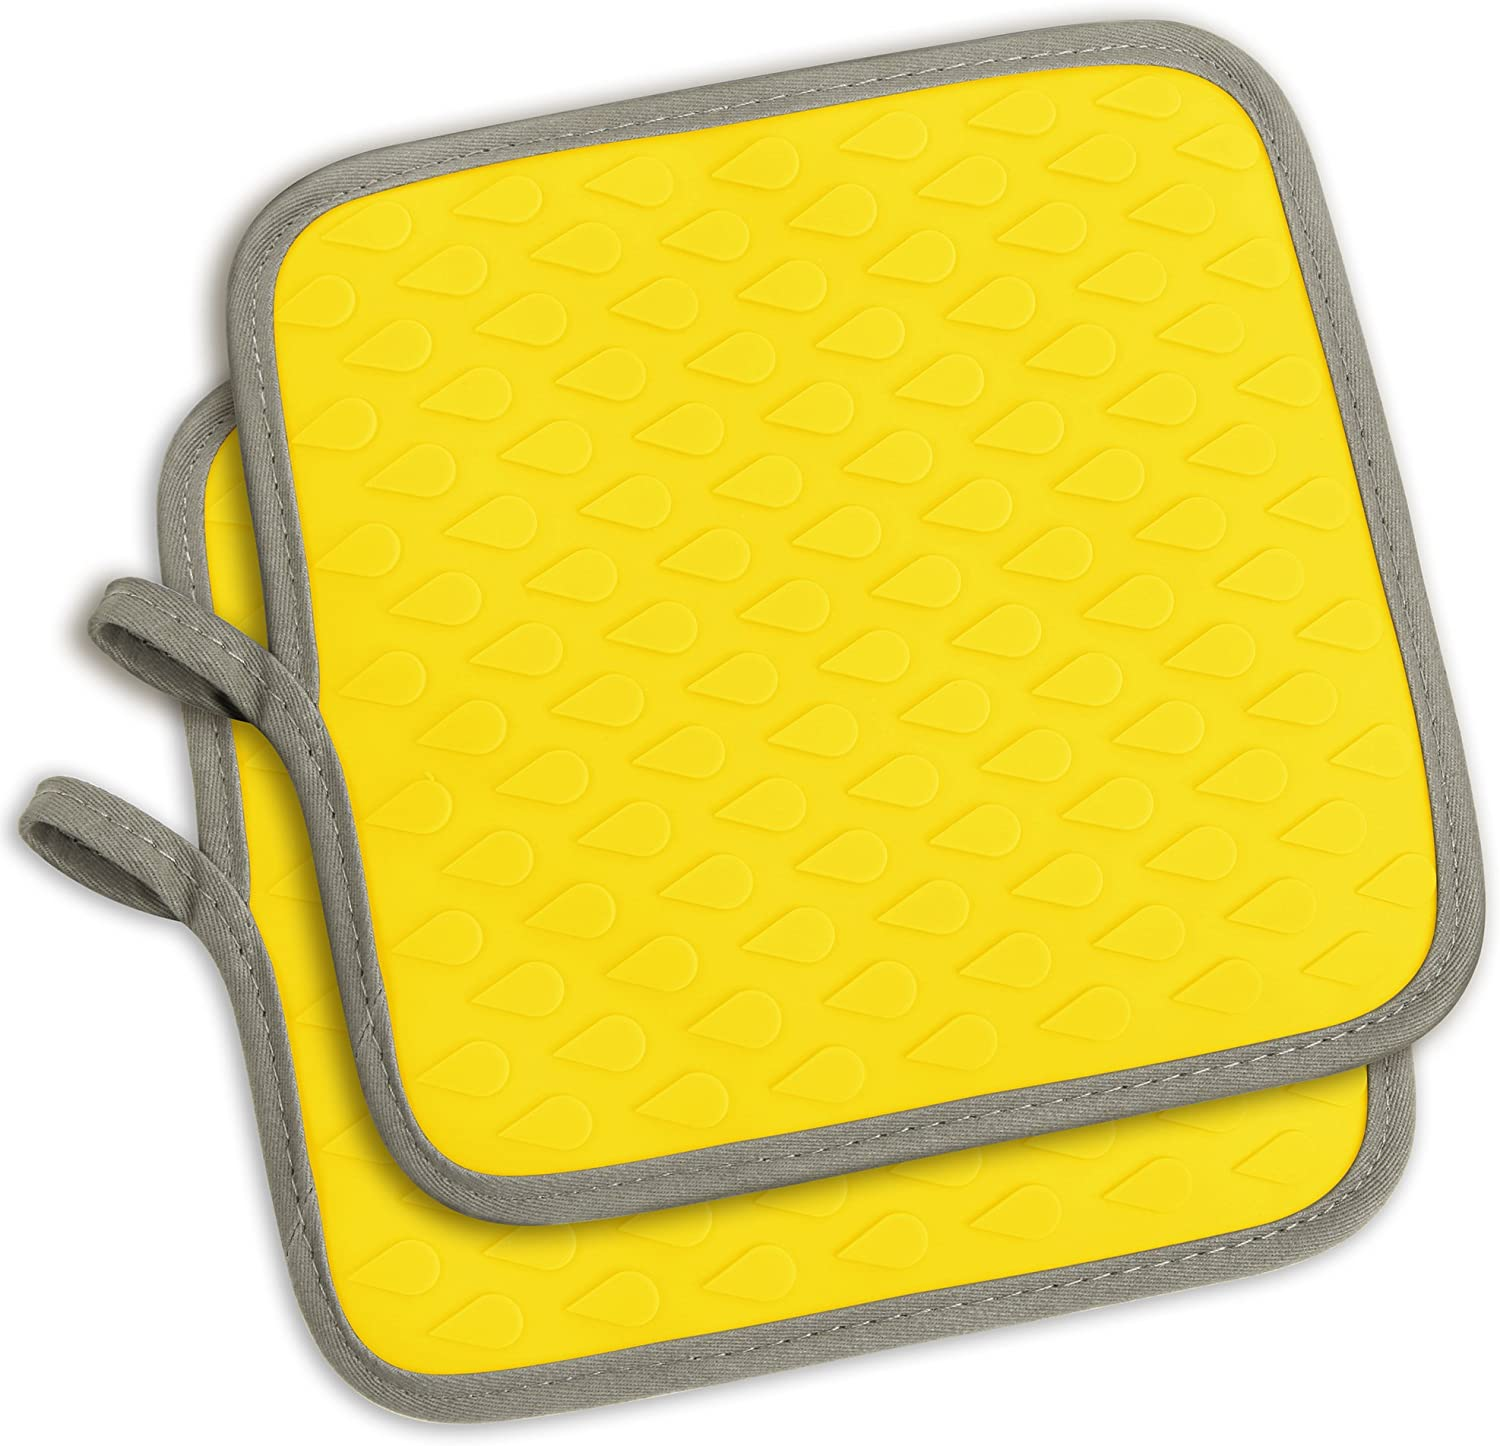 The Ultimate Oven Mitts & Pot Holders Silicone Cooking Gloves, Non-Slip Textured, Kitchen Heat Resistant Safe Mats Fit for BBQ, Grilling, Cooking, Baking(Yellow, 2-Piece Set)